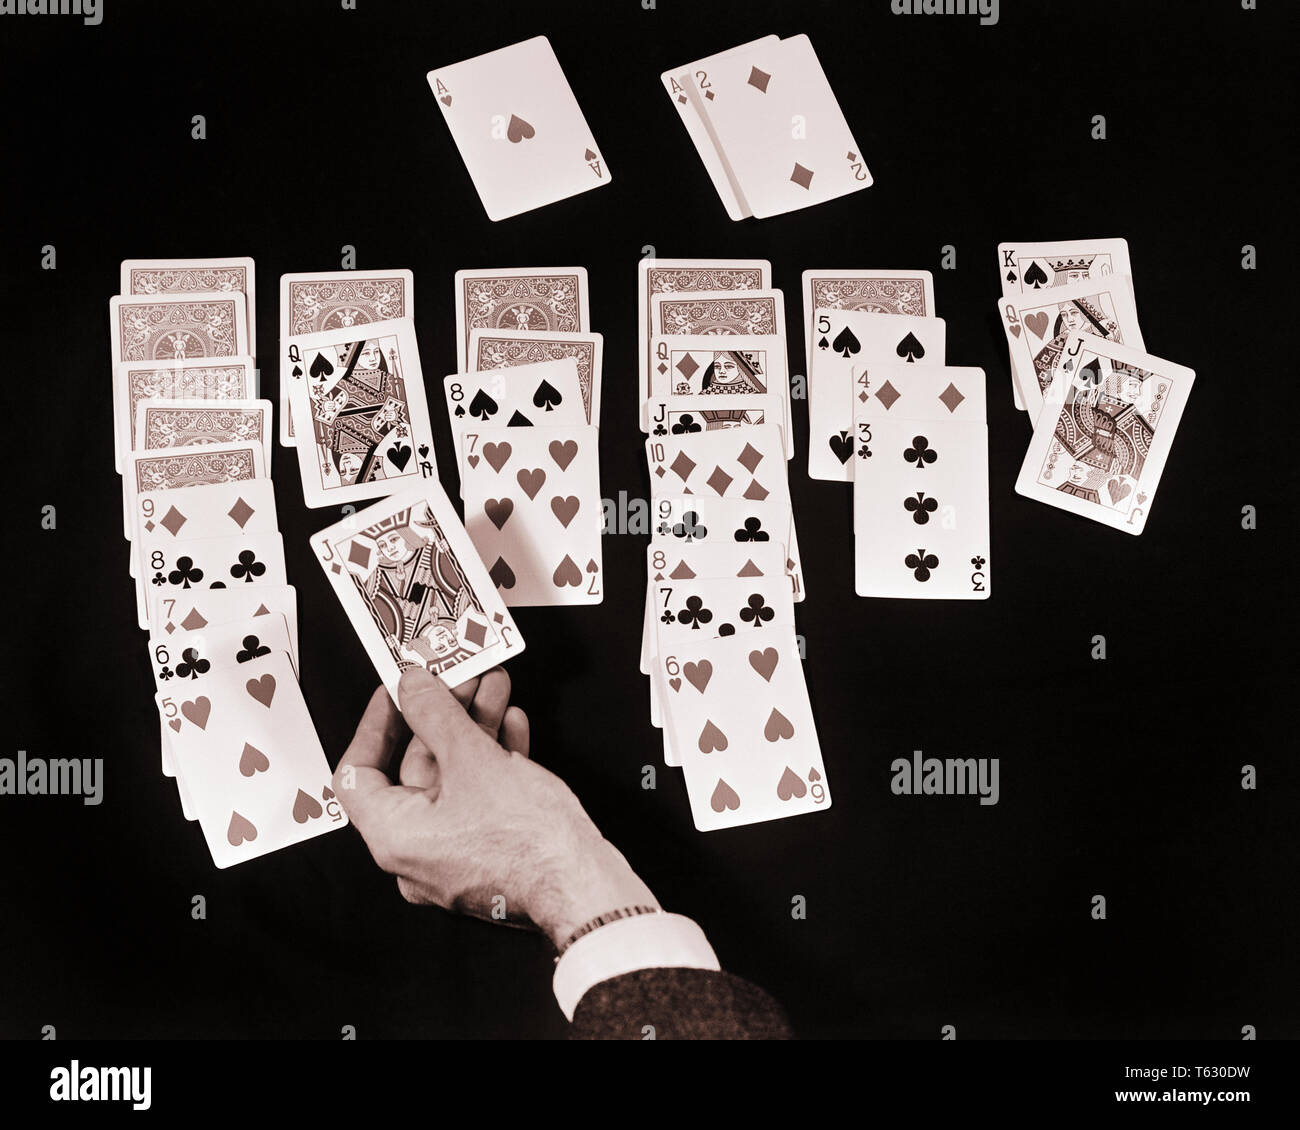 1930s SYMBOLIC SOLITAIRE TABLETOP CARD GAME MALE HAND PLACING RED JACK OF DIAMONDS ON BLACK QUEEN OF SPADES - s12574 HAR001 HARS RECREATION TABLETOP ON CONCEPT CONCEPTUAL CLOSE-UP SOLITAIRE SYMBOLIC CONCEPTS RELAXATION WASTE OF TIME BLACK AND WHITE CAUCASIAN ETHNICITY CONCENTRATION DIVERSION HANDS ONLY HAR001 OLD FASHIONED PLACING REPRESENTATION - Stock Image